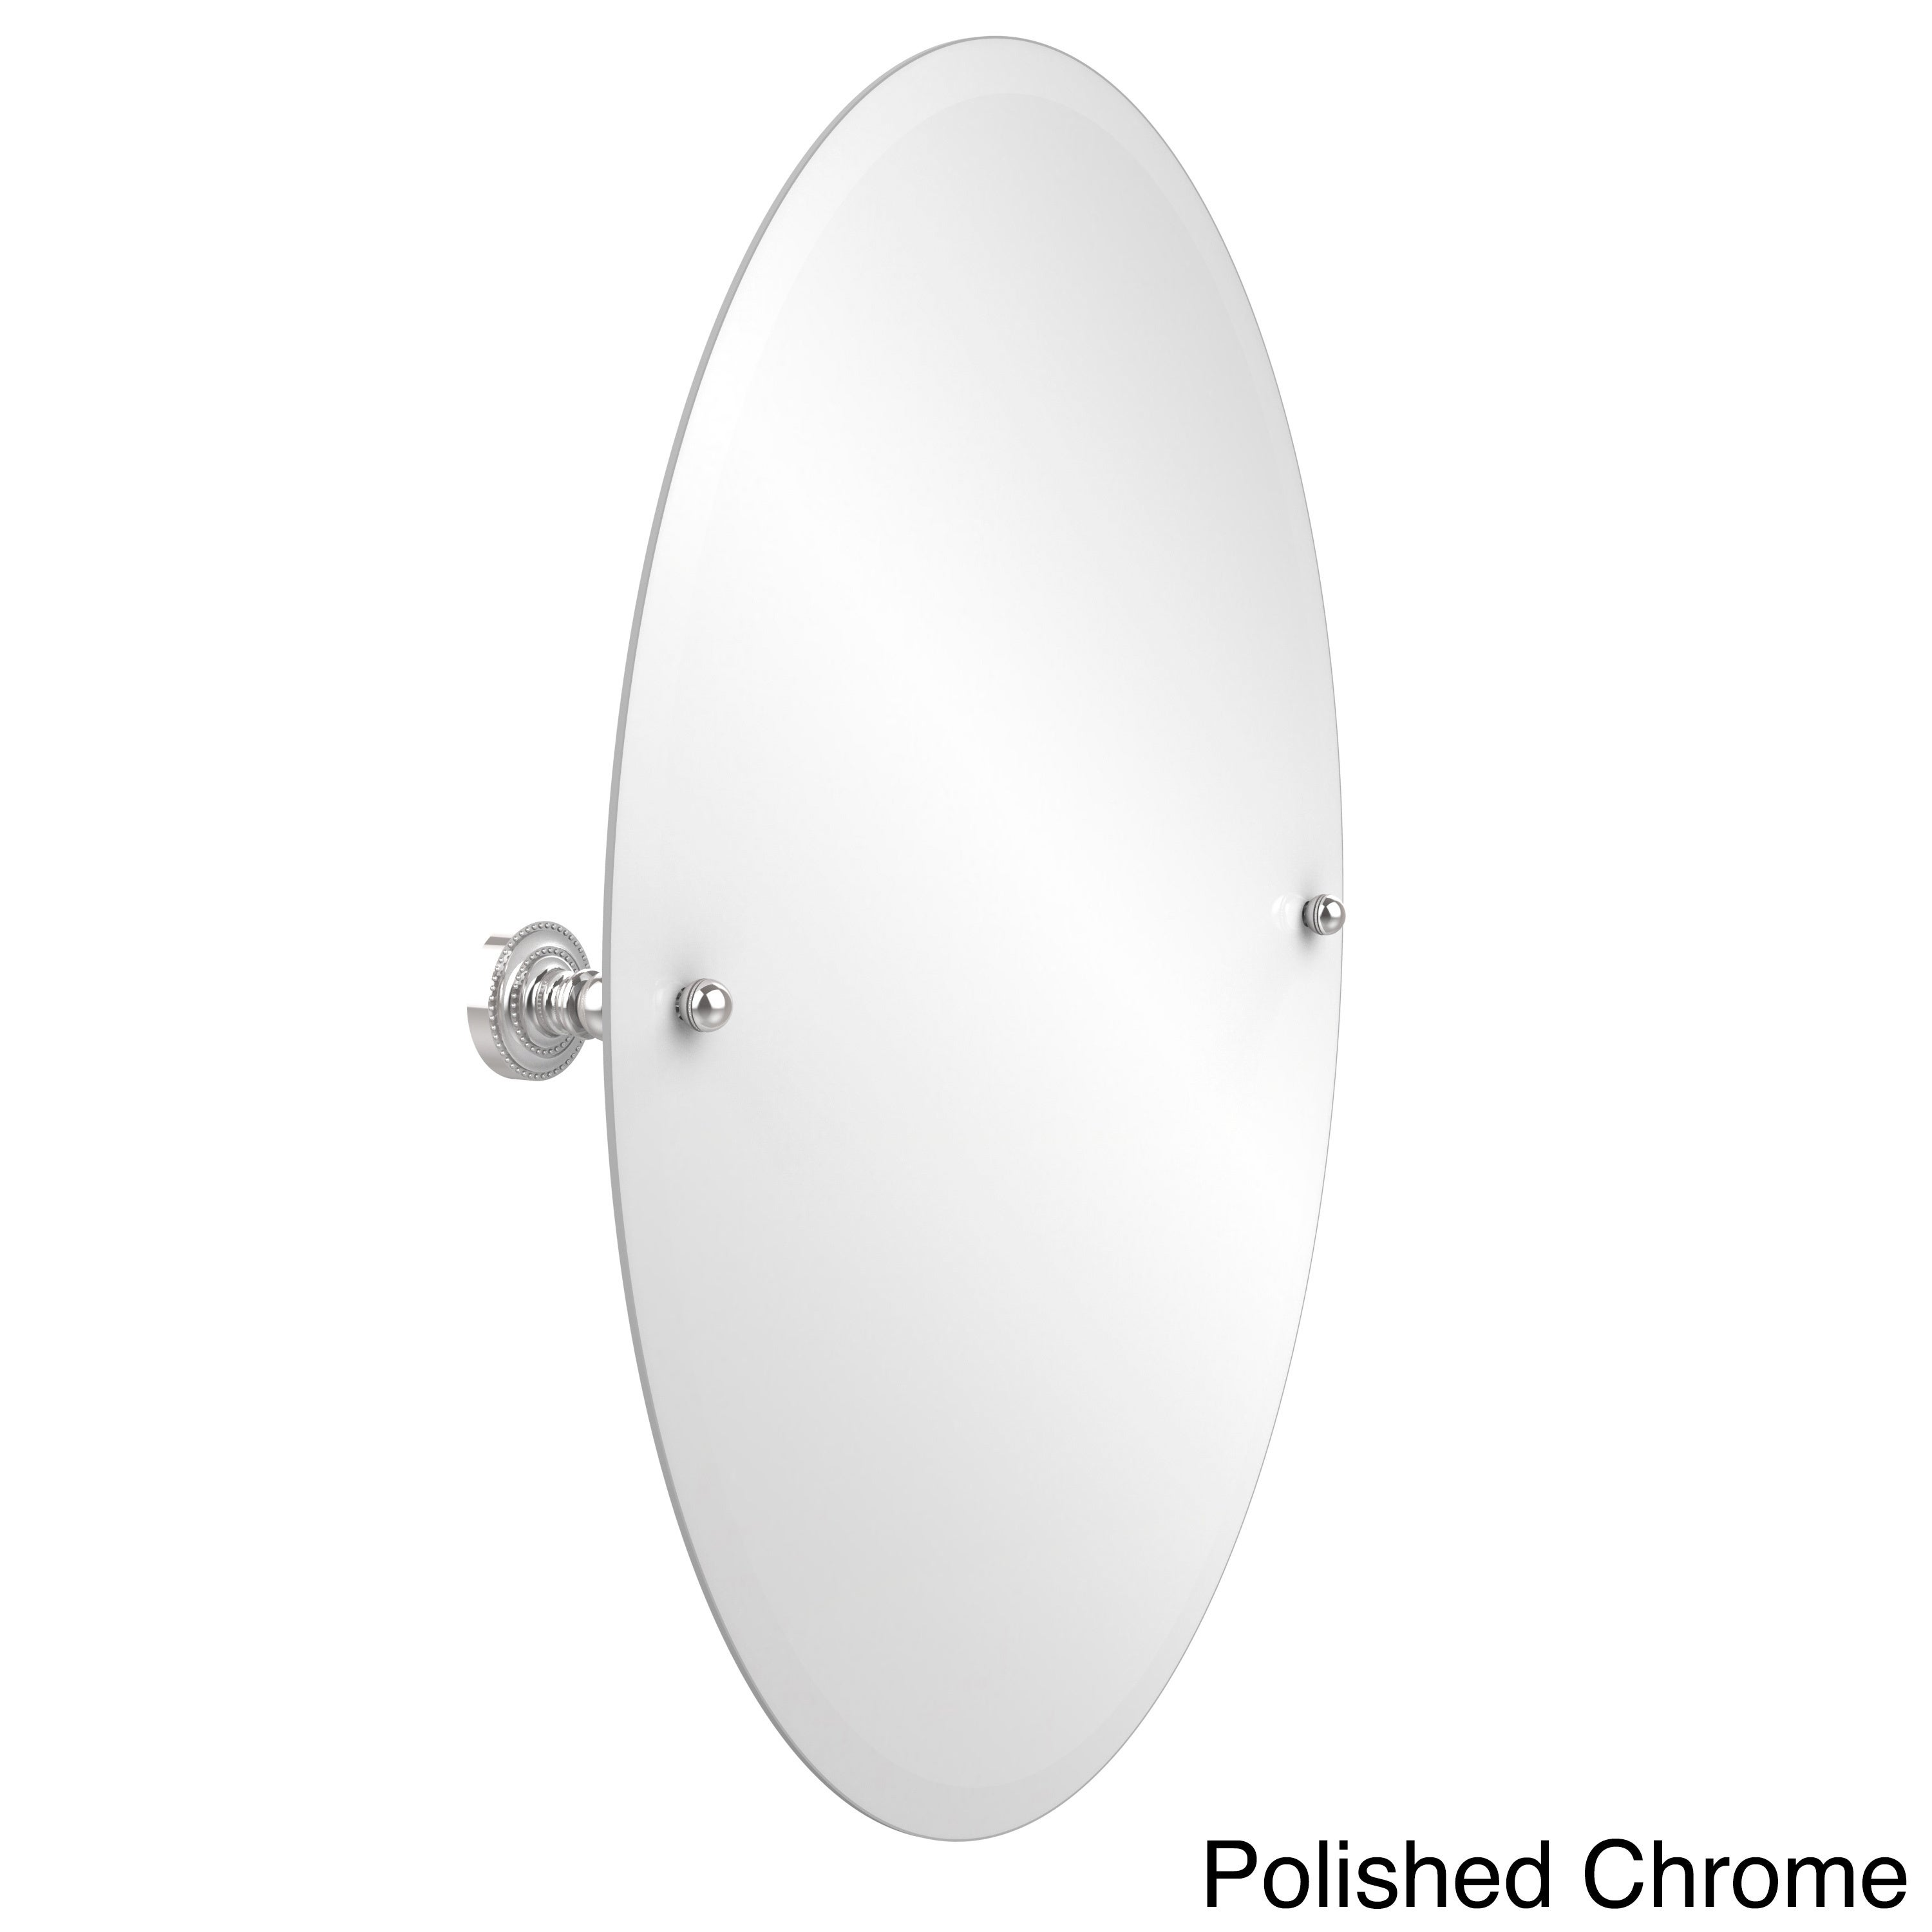 Gatco 4689 Channel Oval Beveled Tilting Wall Mirror Chrome